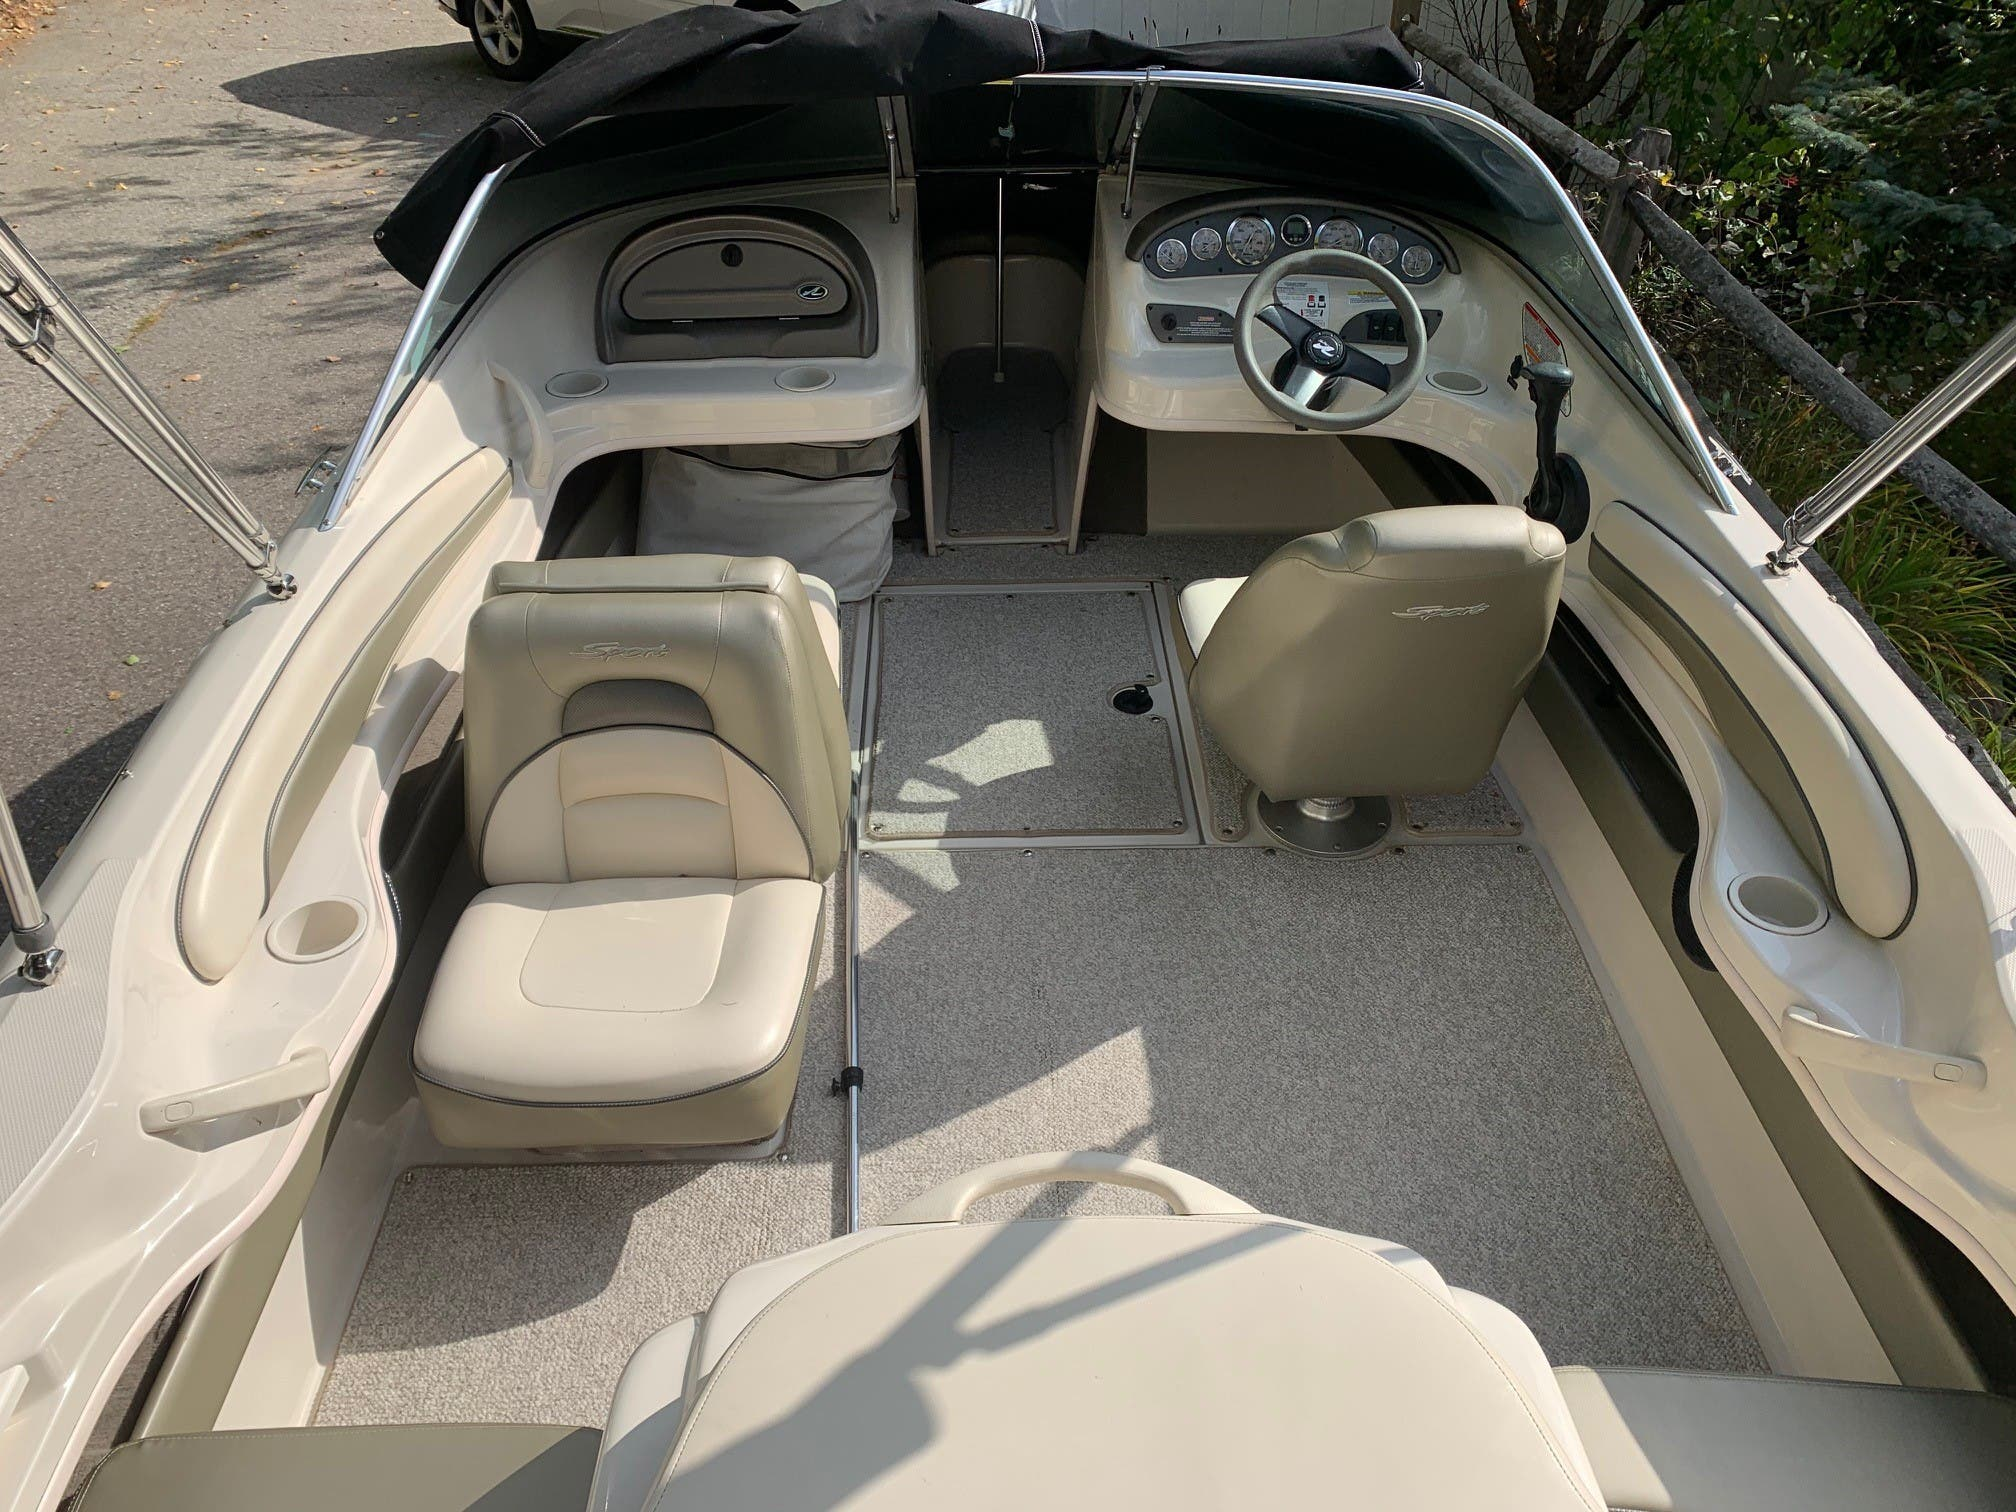 2005 Sea Ray boat for sale, model of the boat is 185 BR & Image # 4 of 7